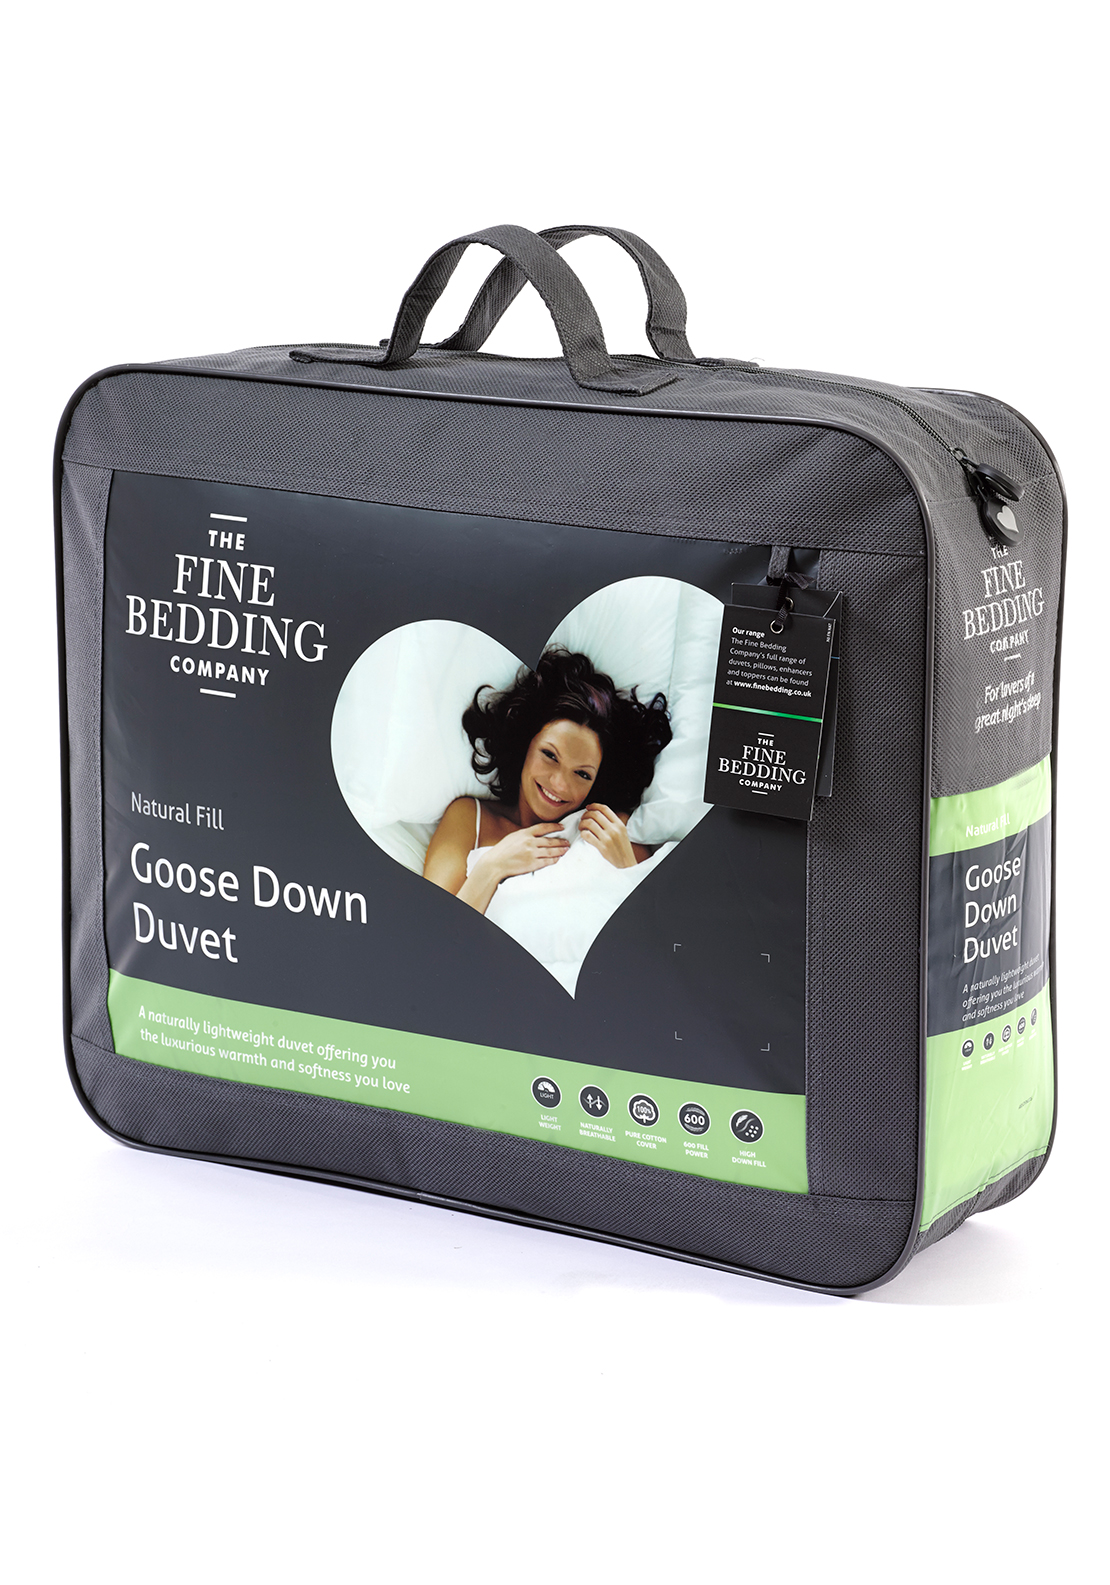 The Fine Bedding Company Goose Down Duvet 13.5 Tog